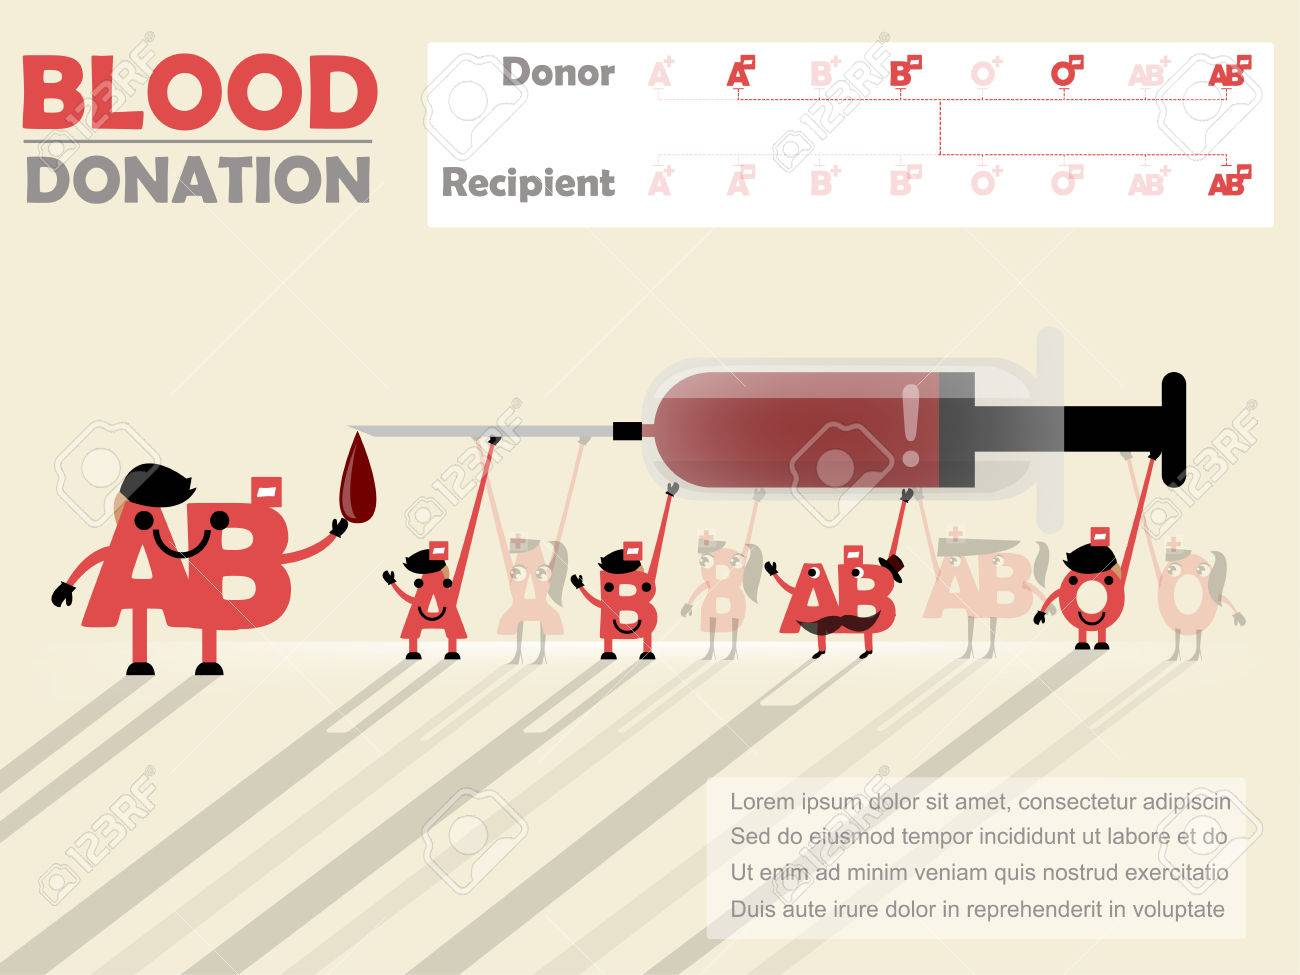 Beautiful Design Of Blood Donation Info Graphic That Recipient Is AB Negative Stock Vector